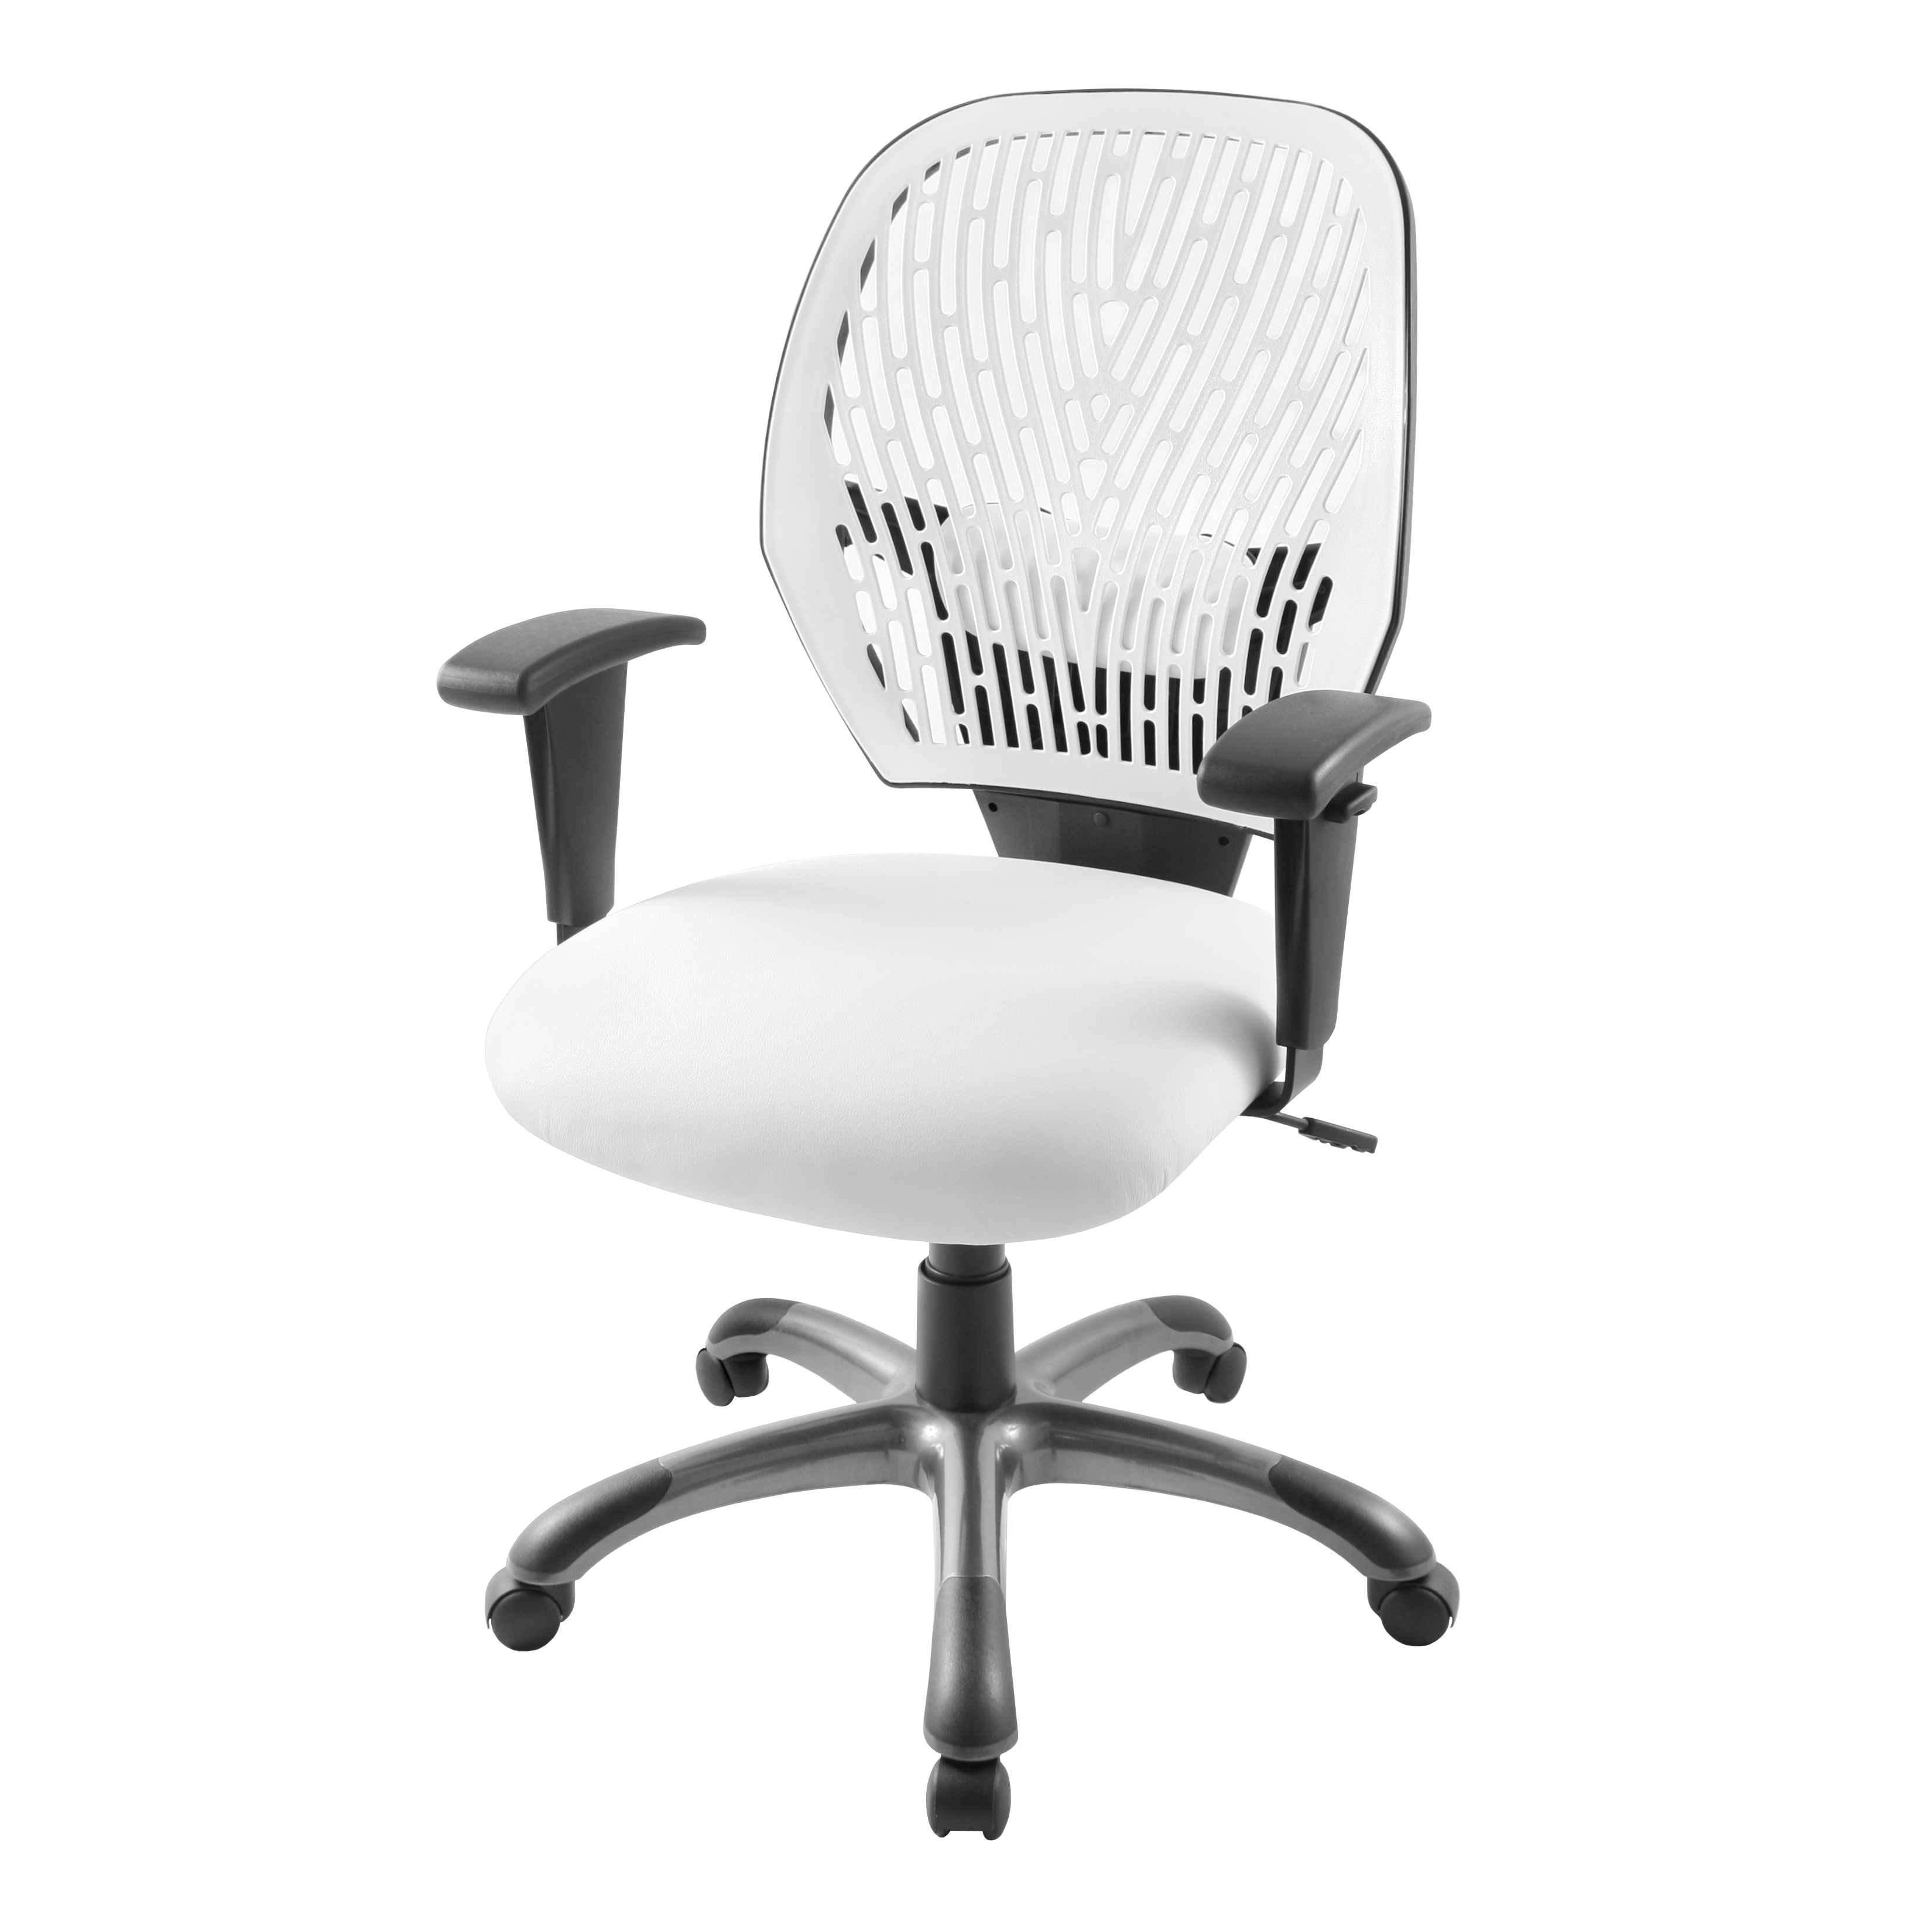 Latest Modern White Office Chair Gallery – Best Daily Home Design Ideas With Regard To Ergonomic Ultra Modern White Executive Office Chairs (View 10 of 20)